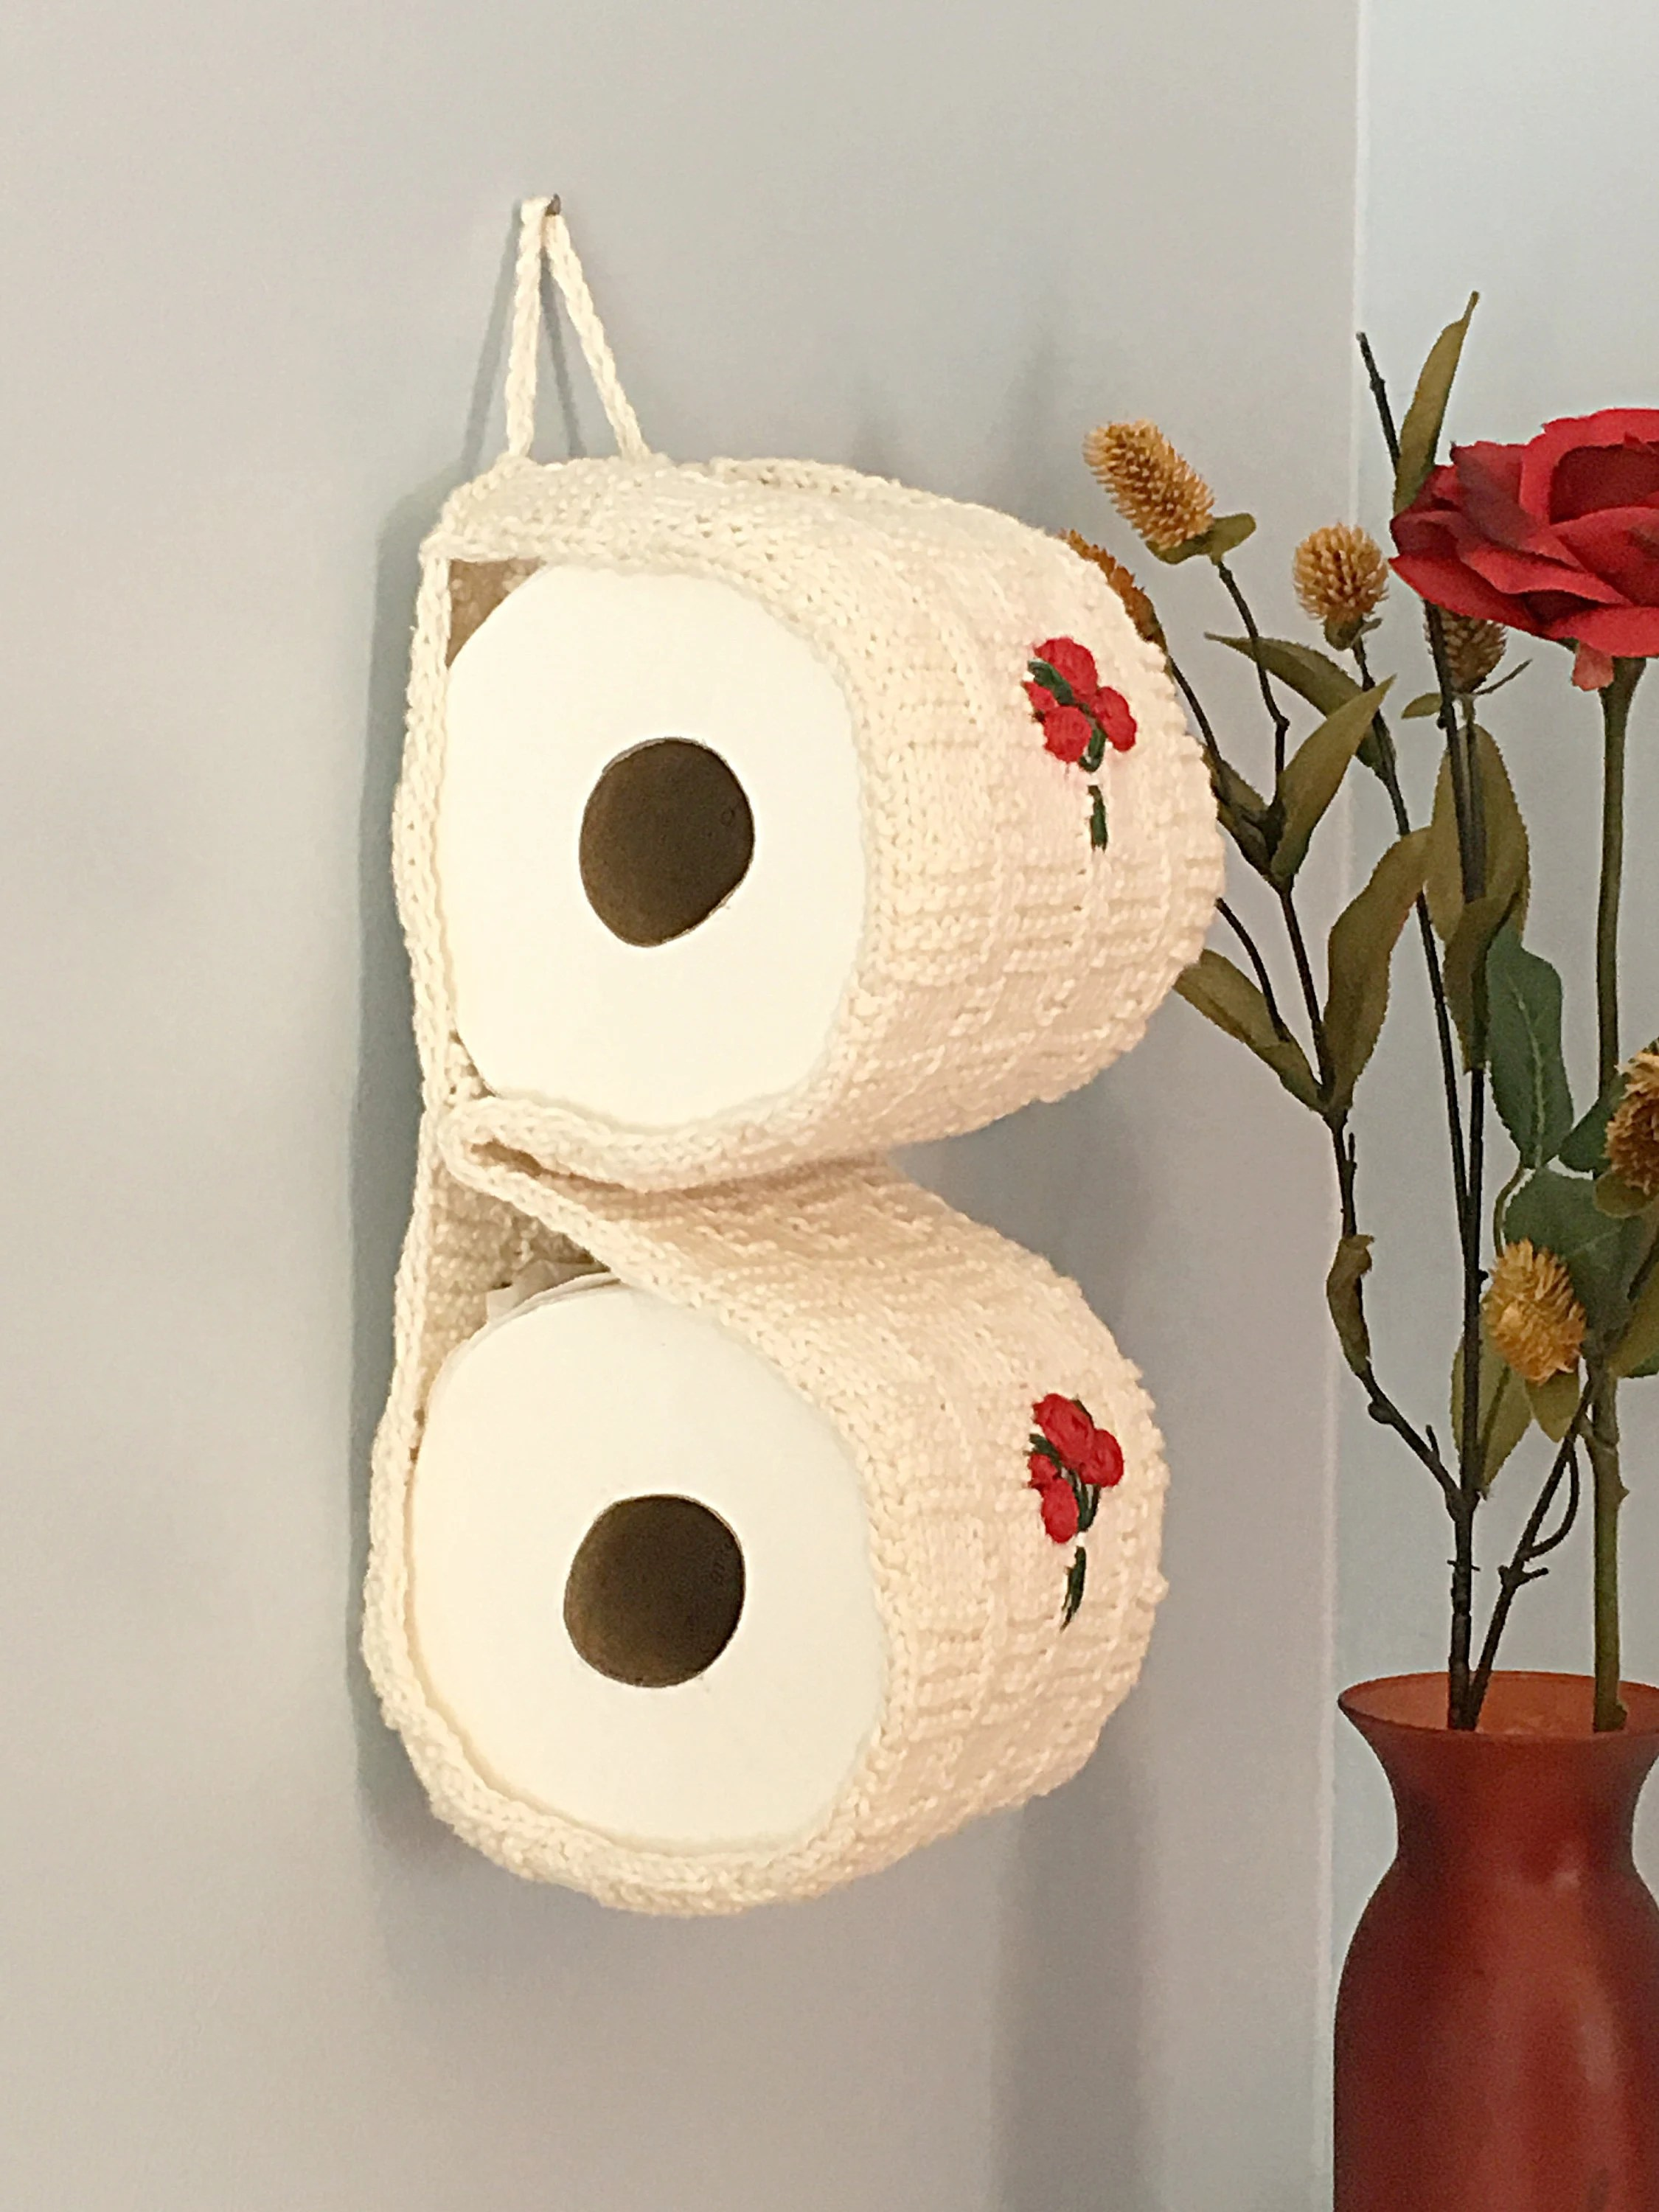 Covered Toilet Paper Storage Toilet Paper Storage With Flowers Bathroom Decor White Knit Crochet Toilet Paper Cozy With Embroidered Roses Housewarming Gift